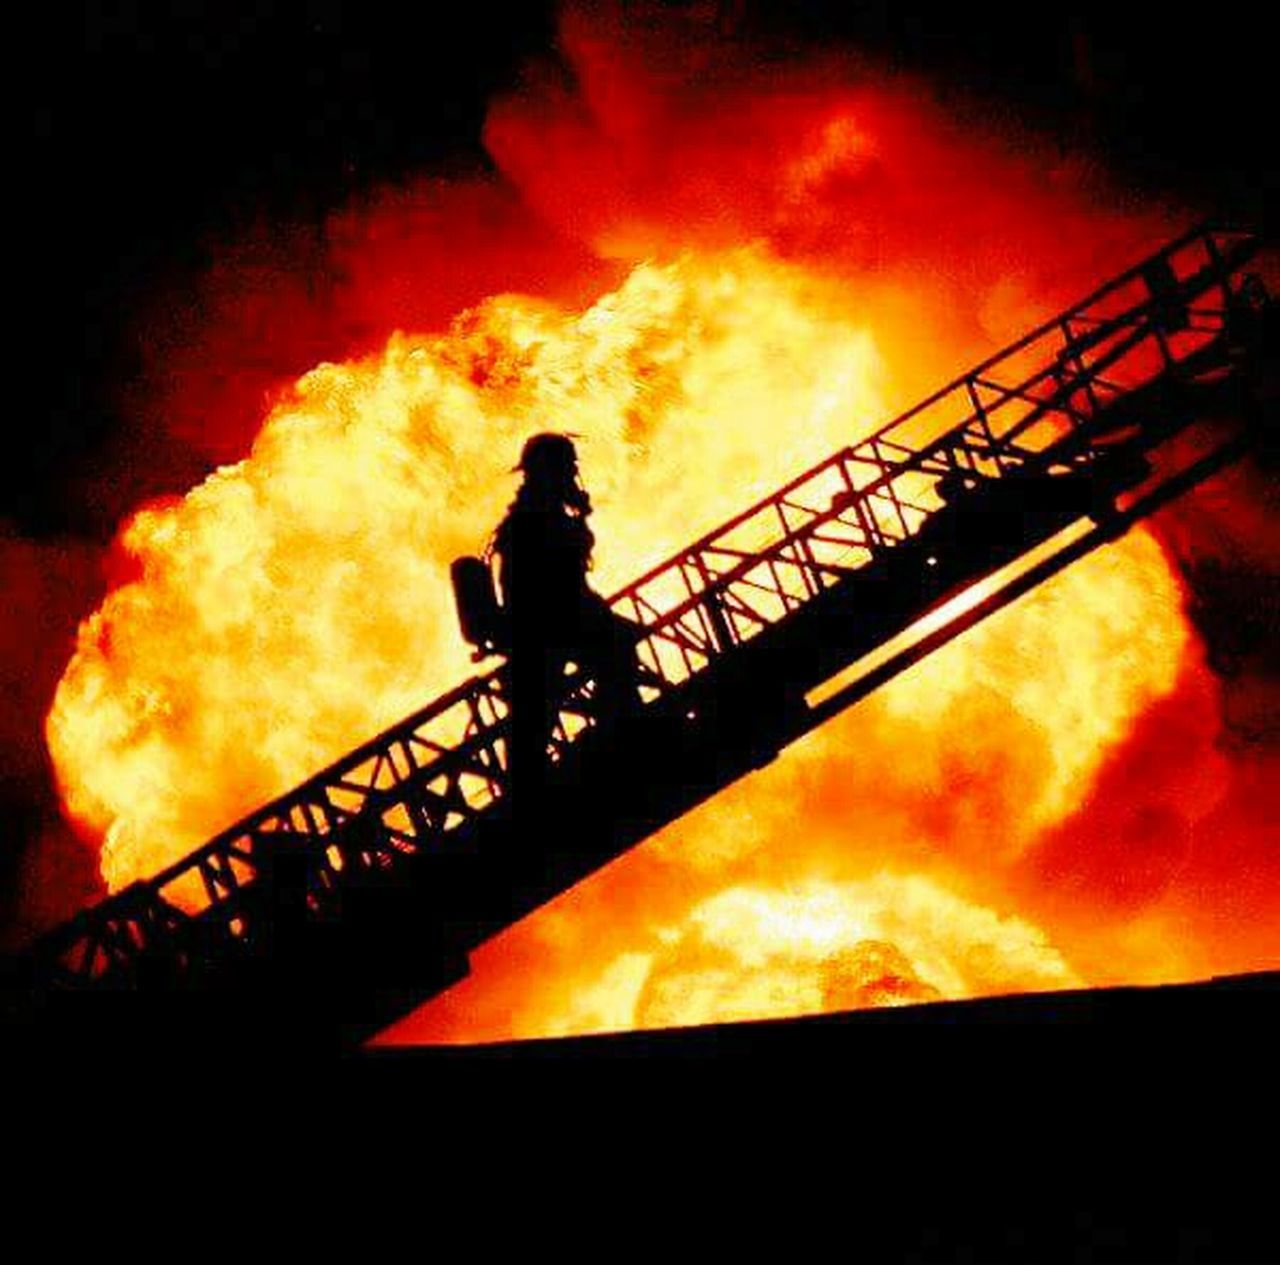 Focus on the job at hand. Flame Service Honor The Calling Sacrafice  Pride Commitment Firefighter Apparatus Ladder Arial Finding New Frontiers